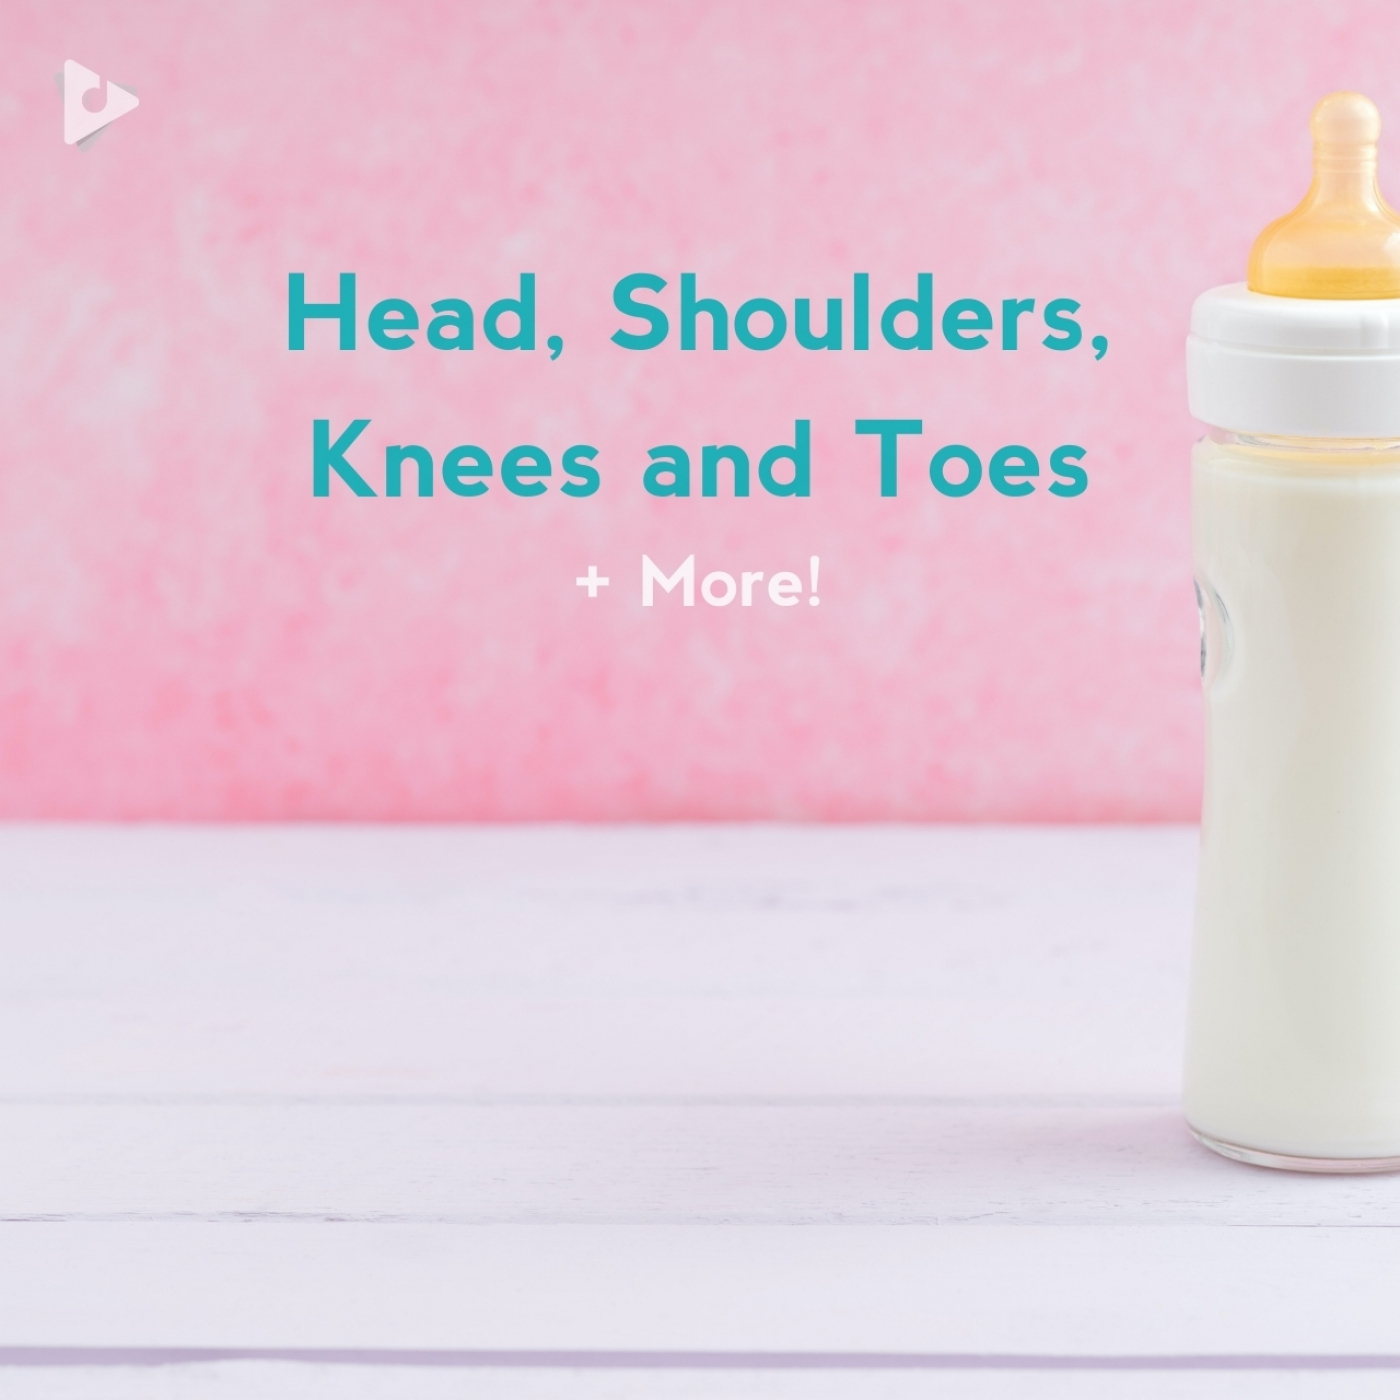 Head, Shoulders, Knees and Toes + More!